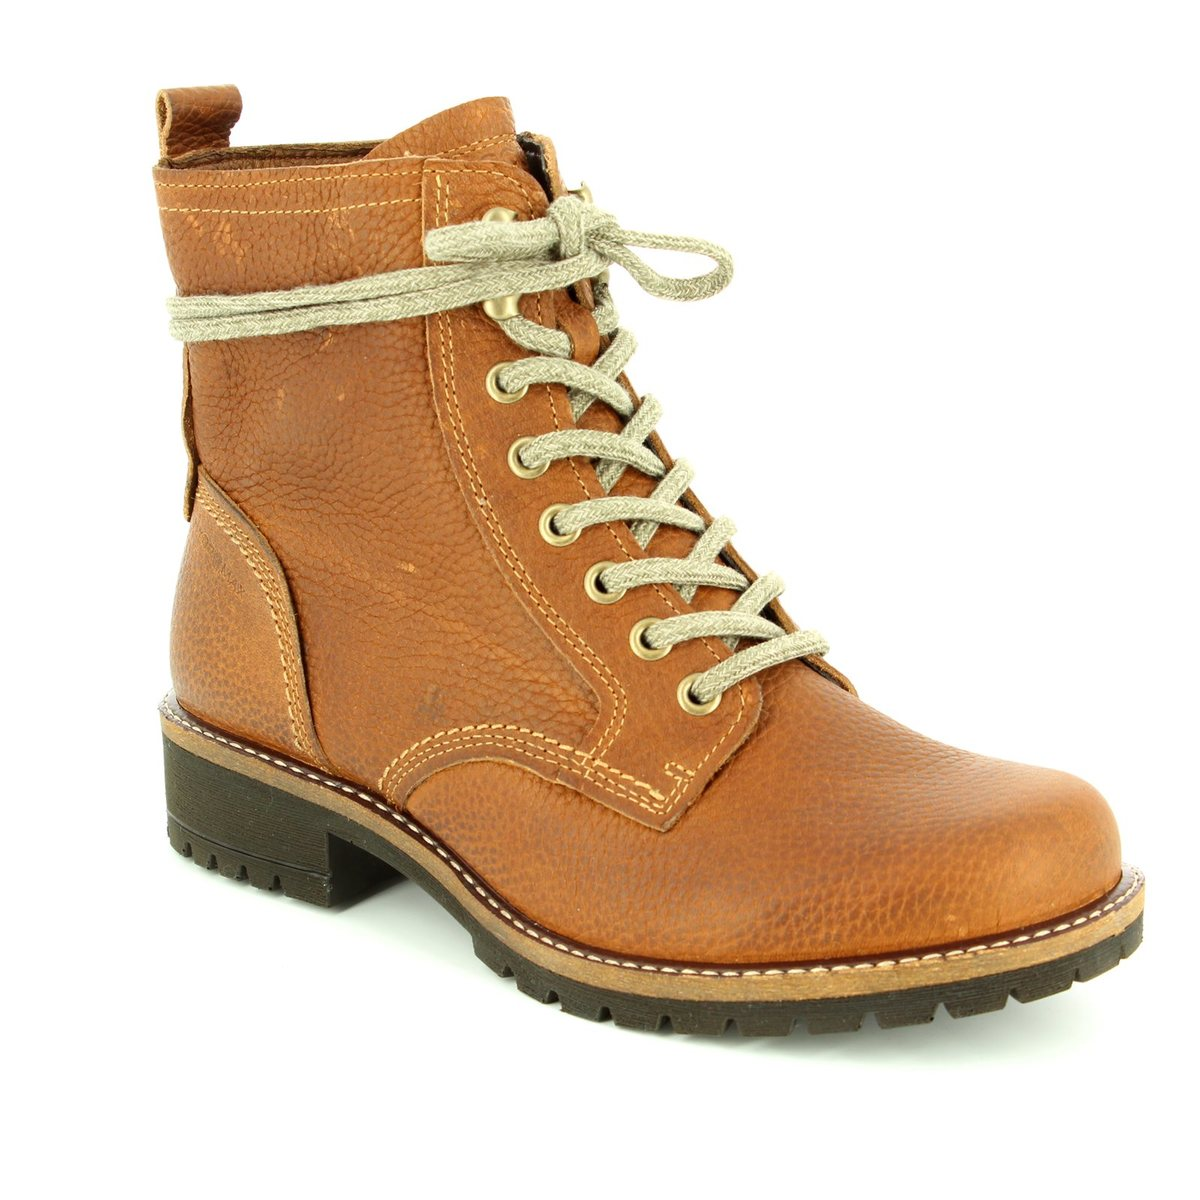 10f77f2d48 244633/01482 Elainez Hydro at Begg Shoes & Bags